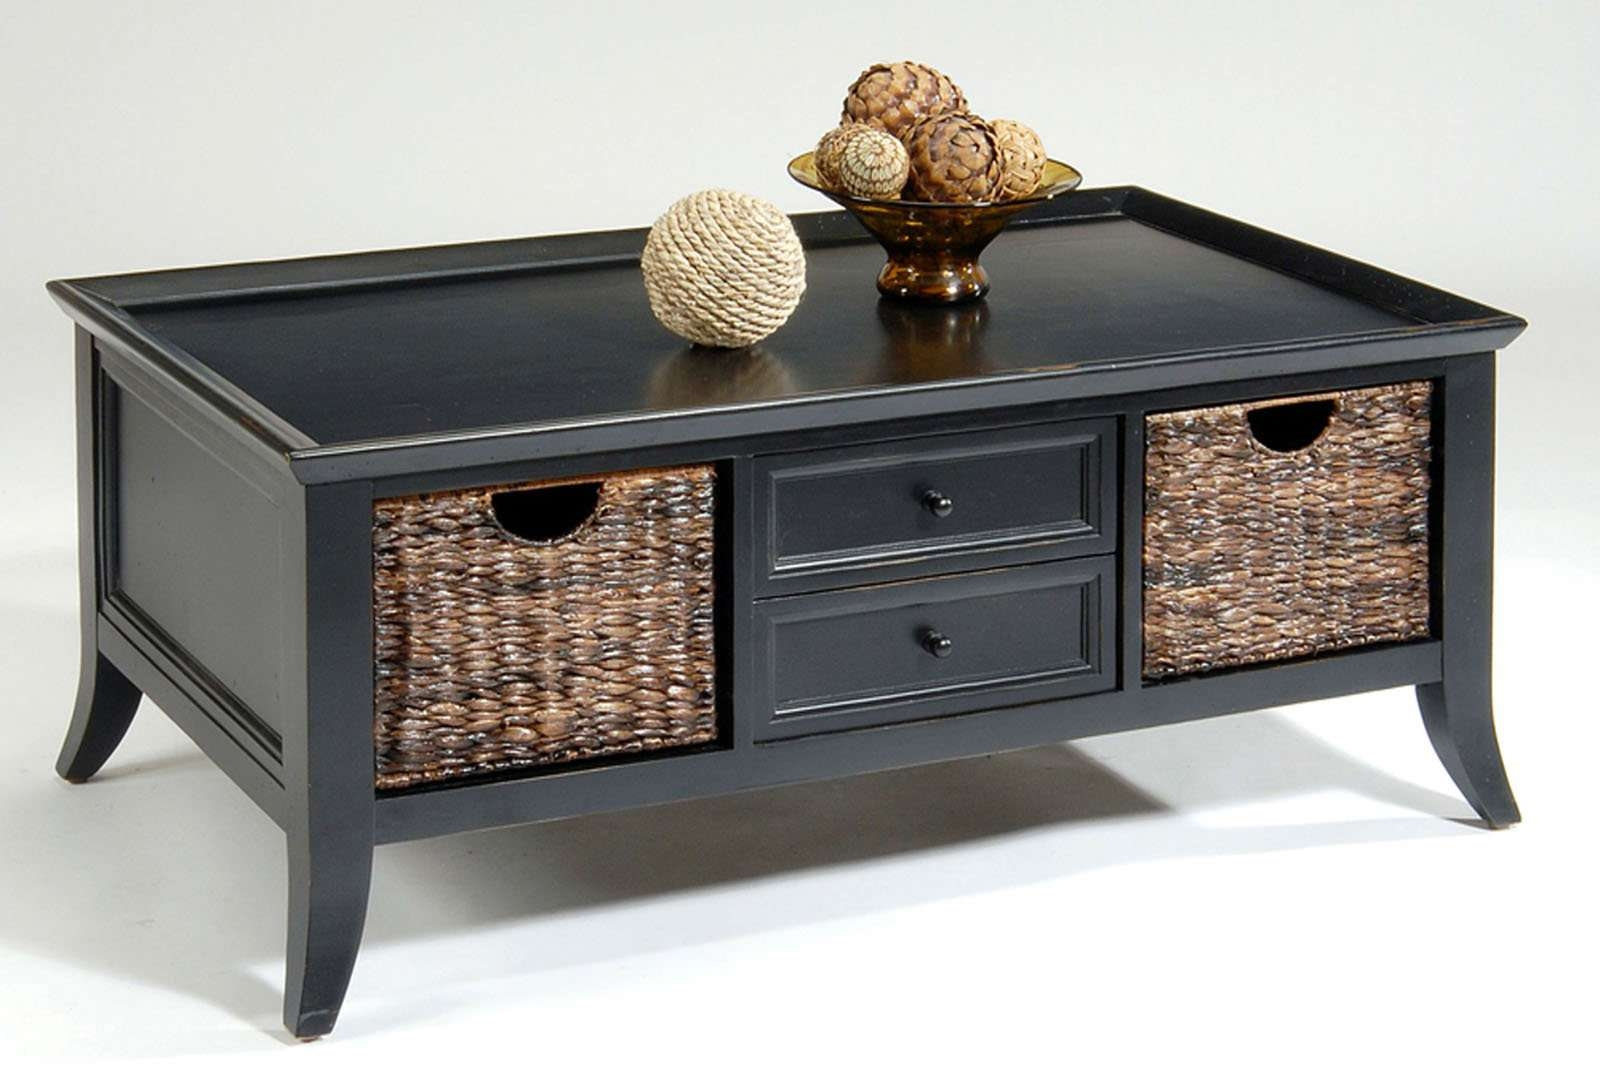 Black Coffee Table With Hidden Storage Chocoaddicts Com Under Ba Within Popular Coffee Table With Wicker Basket Storage (View 1 of 20)